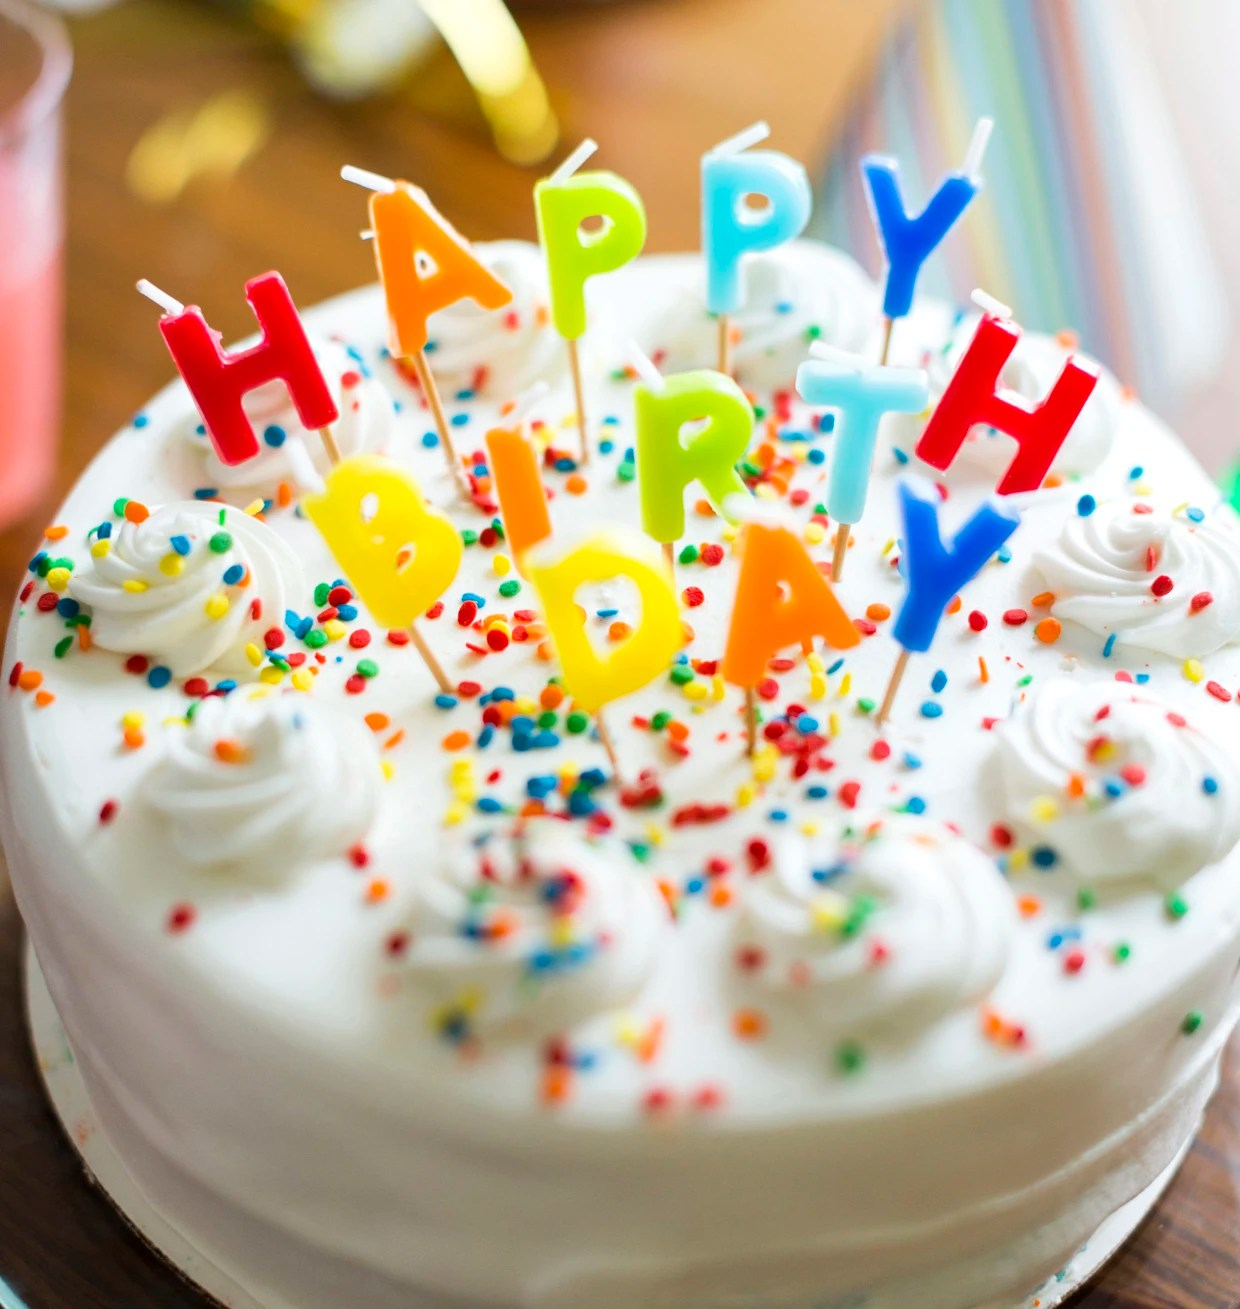 U S Judge Rules Copyright For Happy Birthday To You Invalid